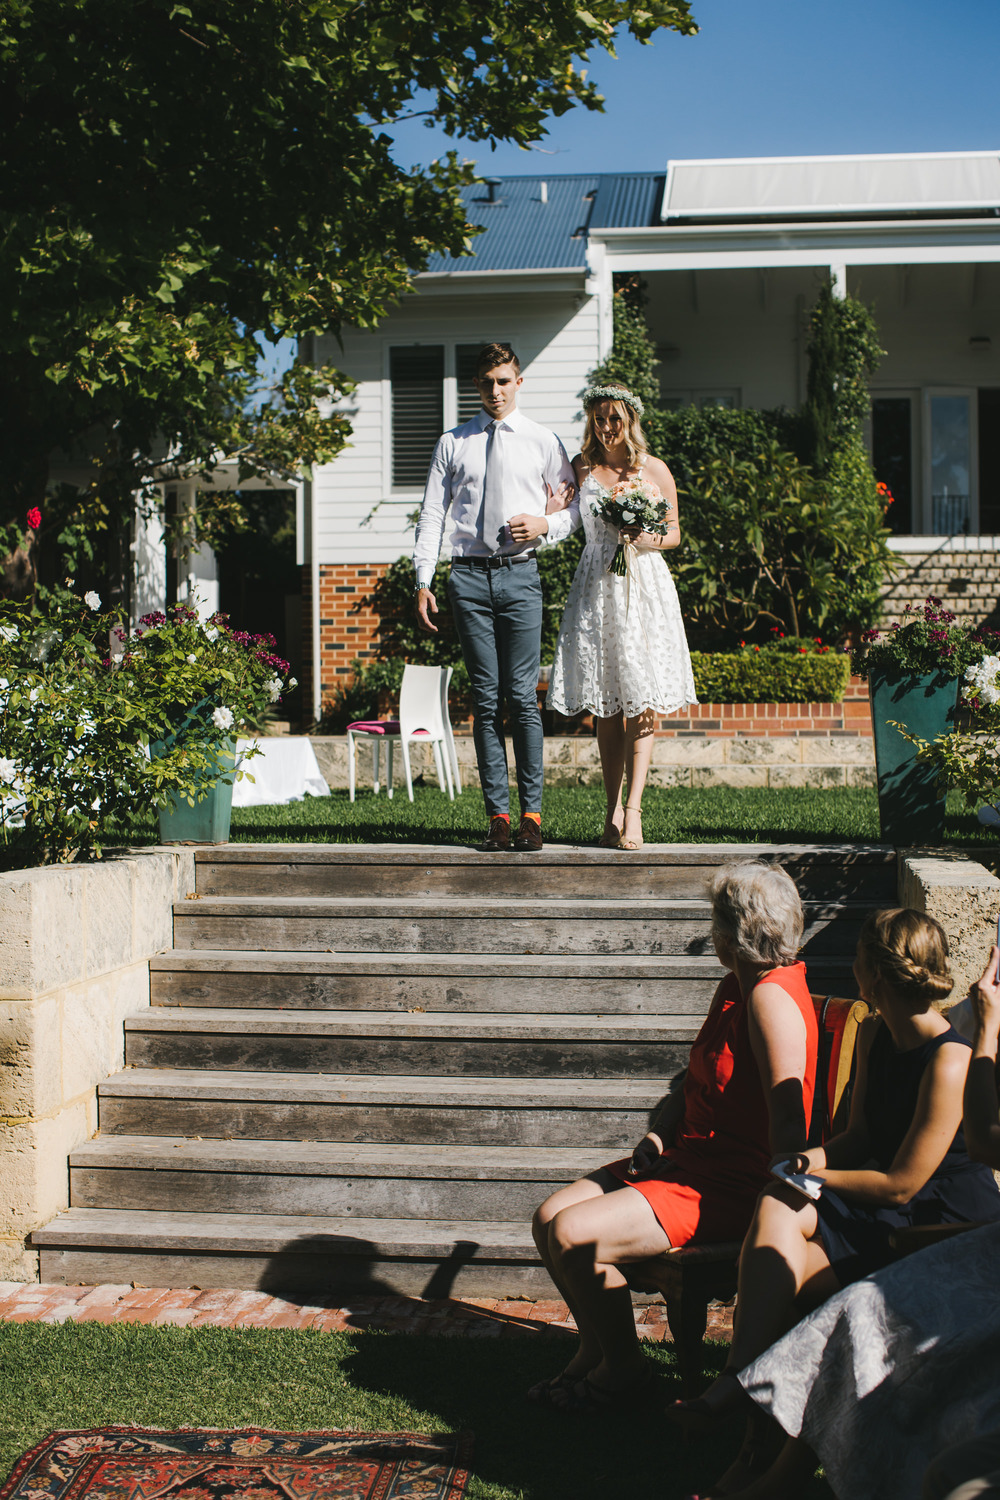 AmandaAlessi__WeddingPhotography_Perth_00.jpg